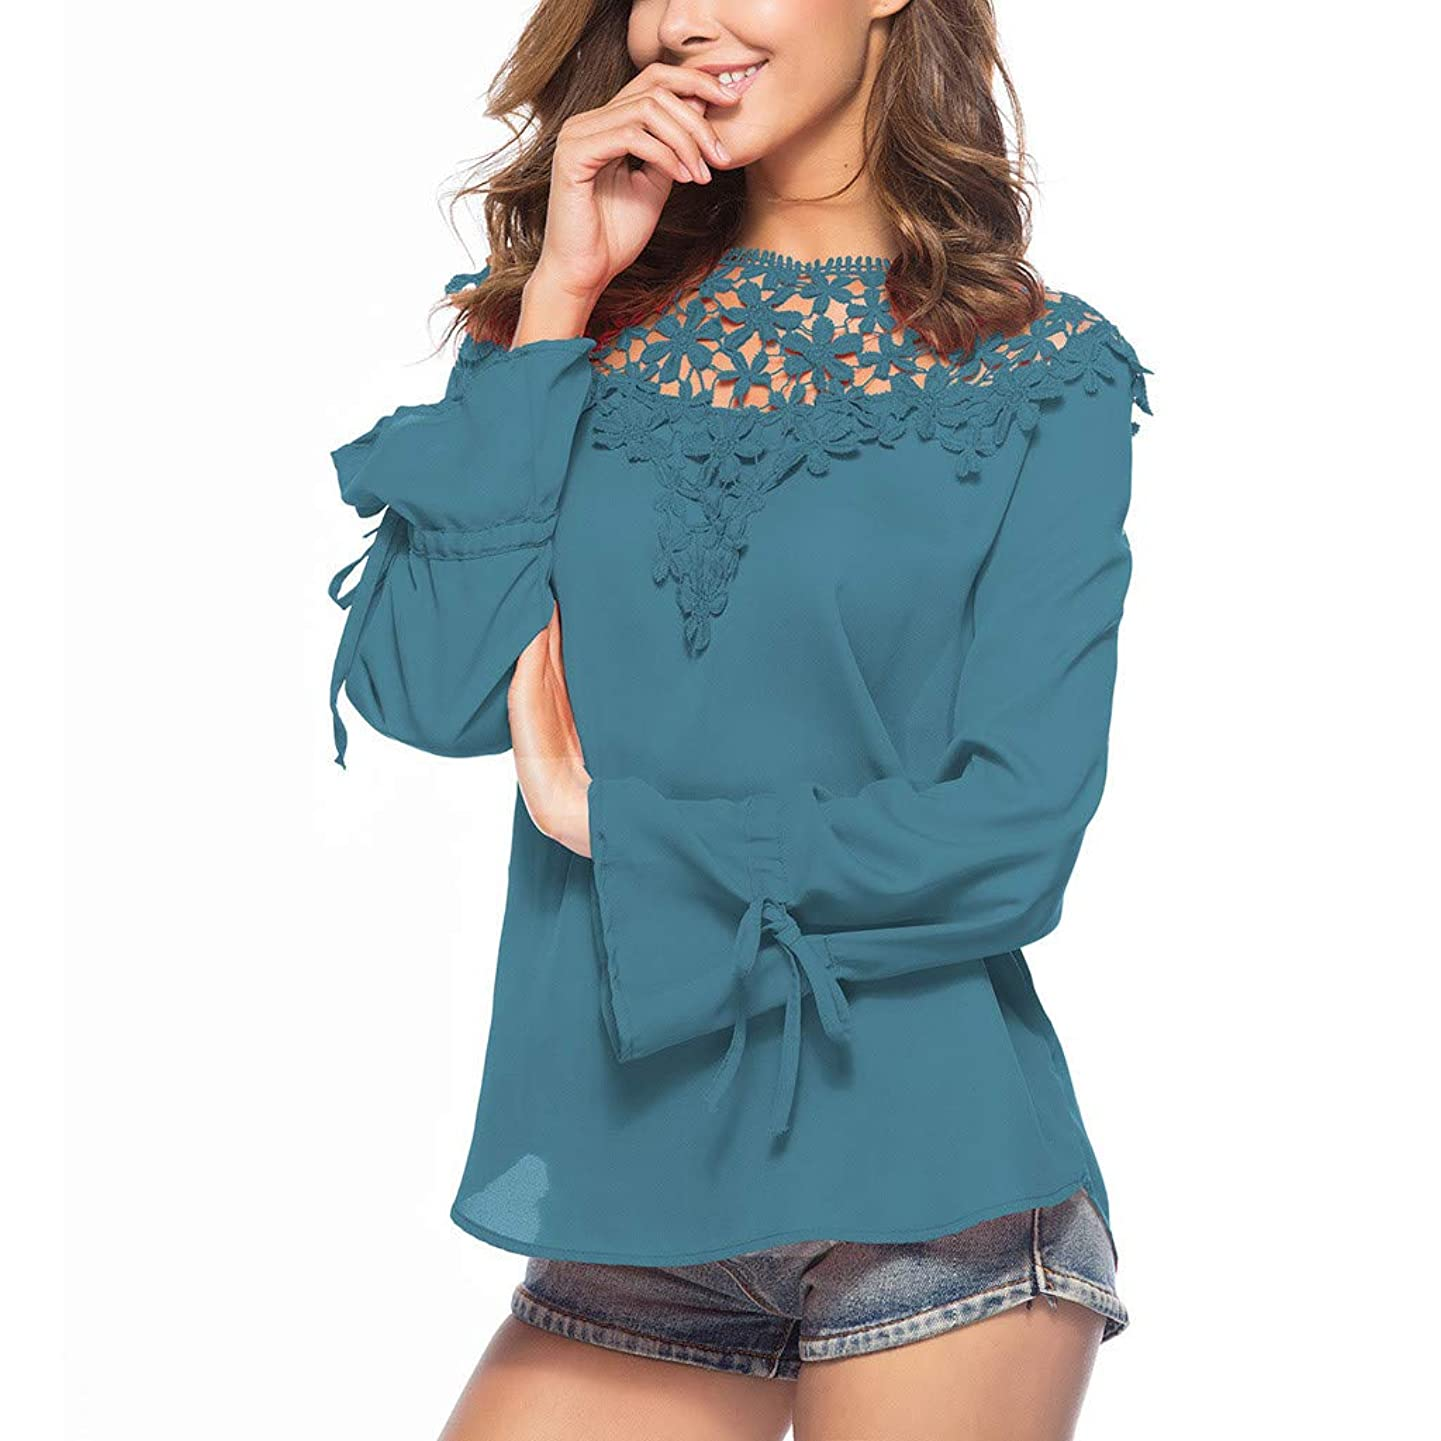 AIMTOPPY Gift Idea Lady Chiffon Blouses Lace Patchwork Hollow Out Long Sleeve T-Shirt Womens Spring Solid Color Tops